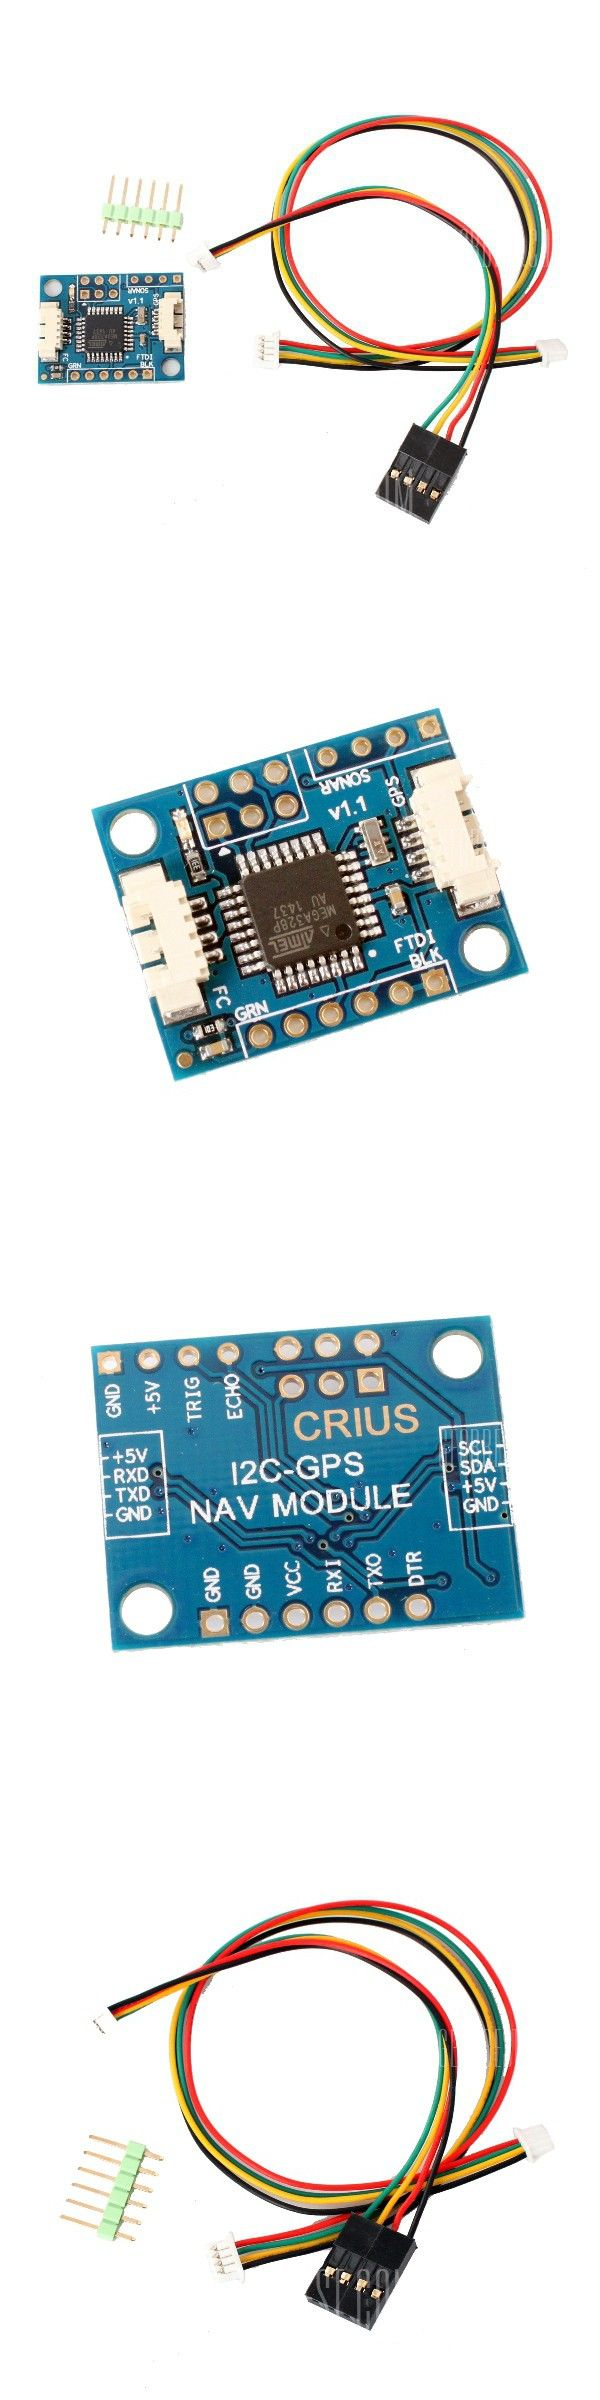 CRIUS MultiWii MWC I2C-GPS Adaption Board with Molex socket Pointer for 328P MWC Flight Controller